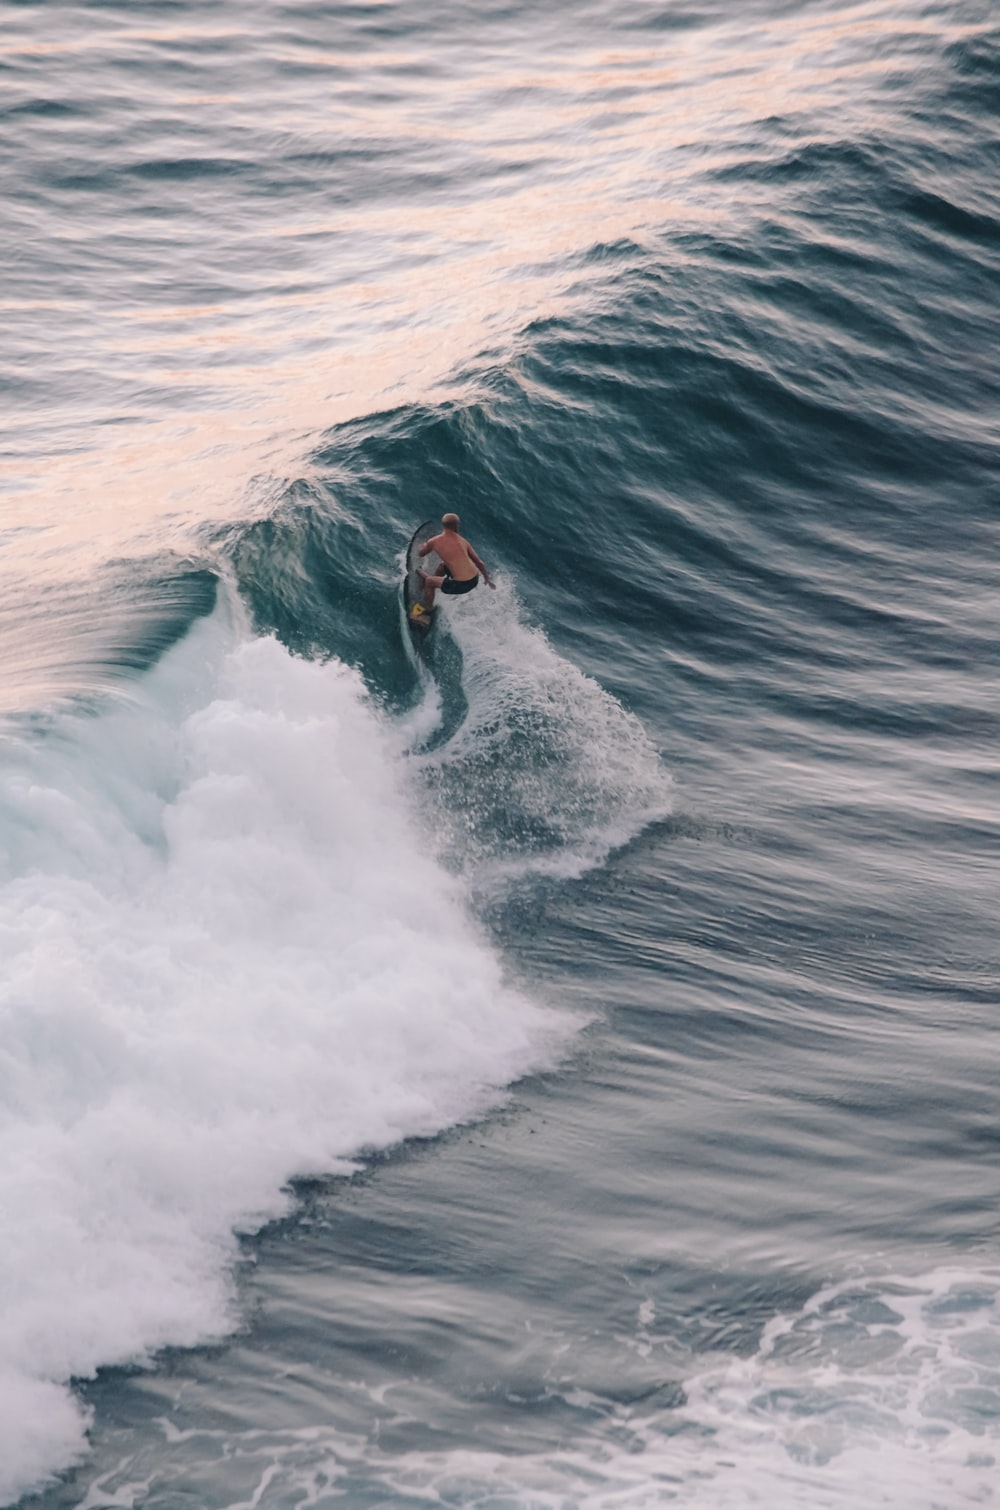 person surfing in a wave close-up photography